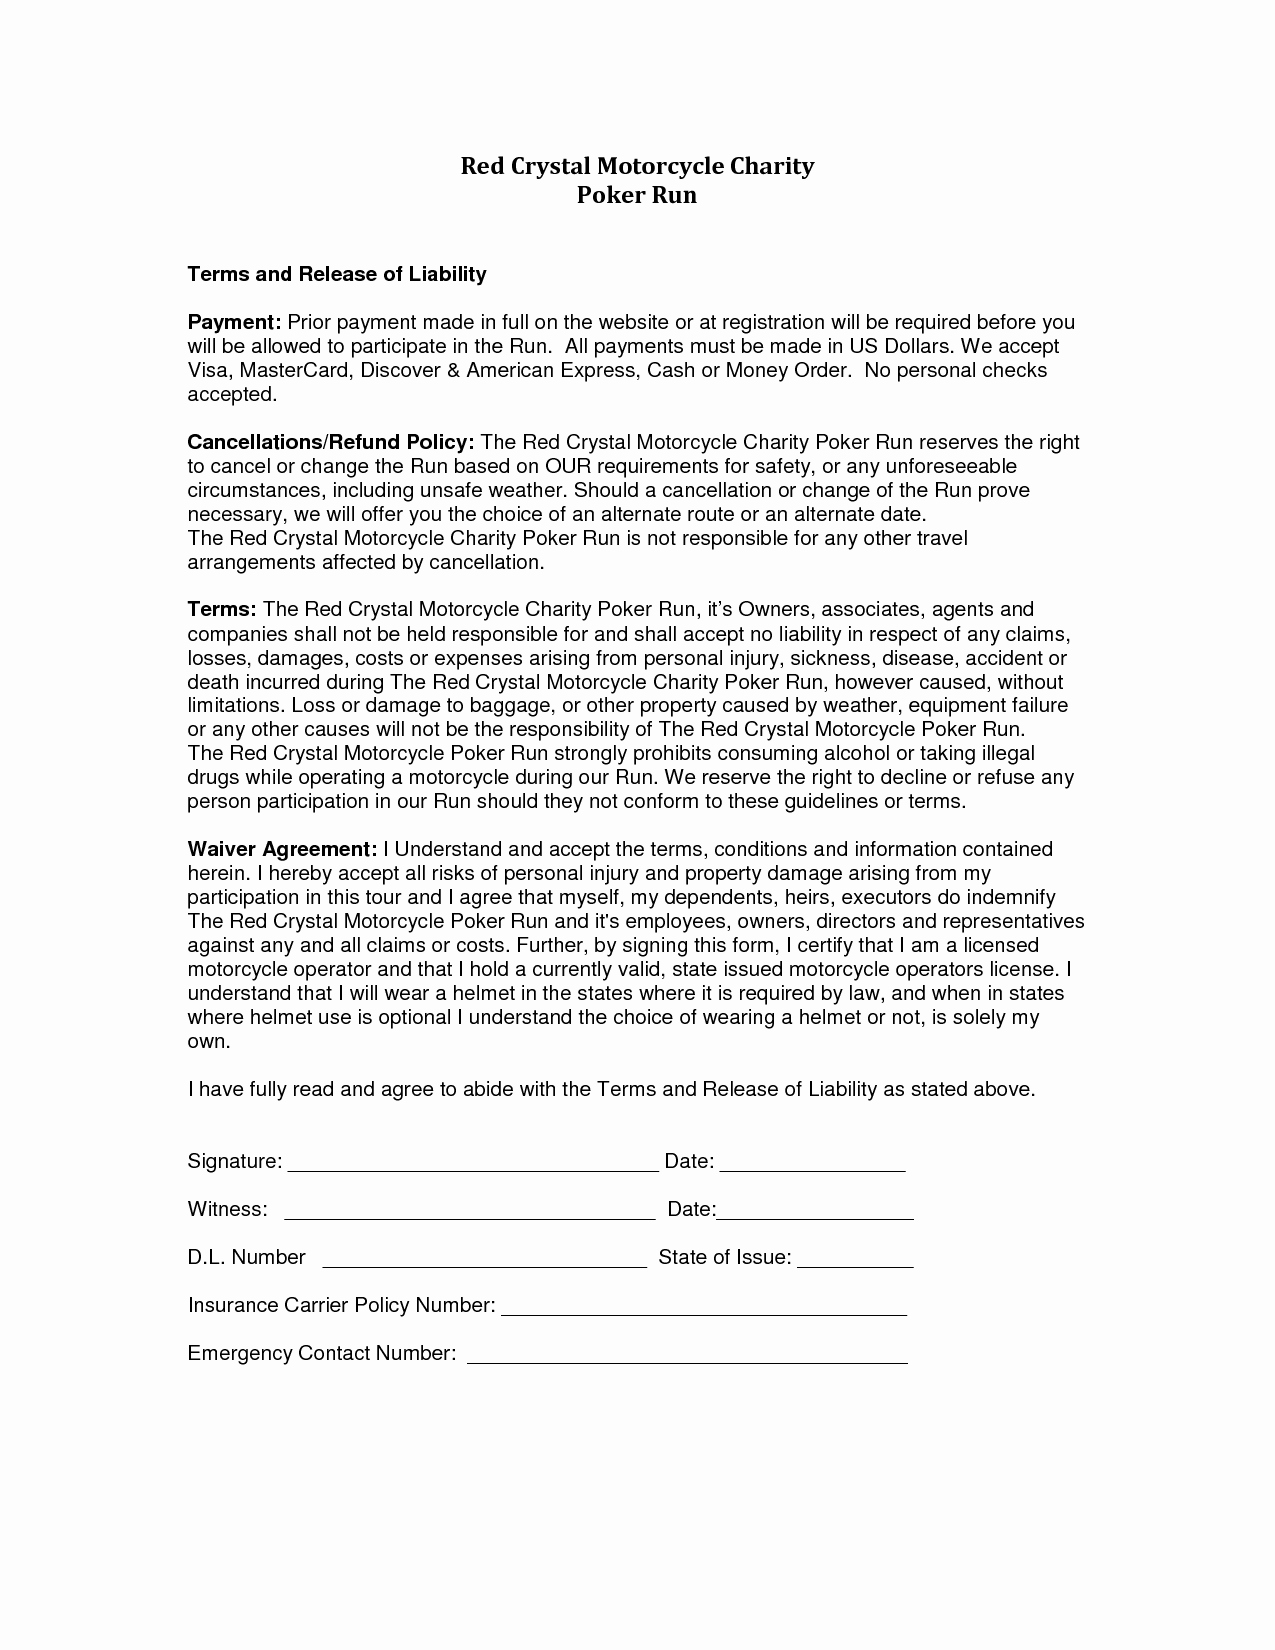 Liability form Template Free Awesome Release Liability Sample Free Printable Documents